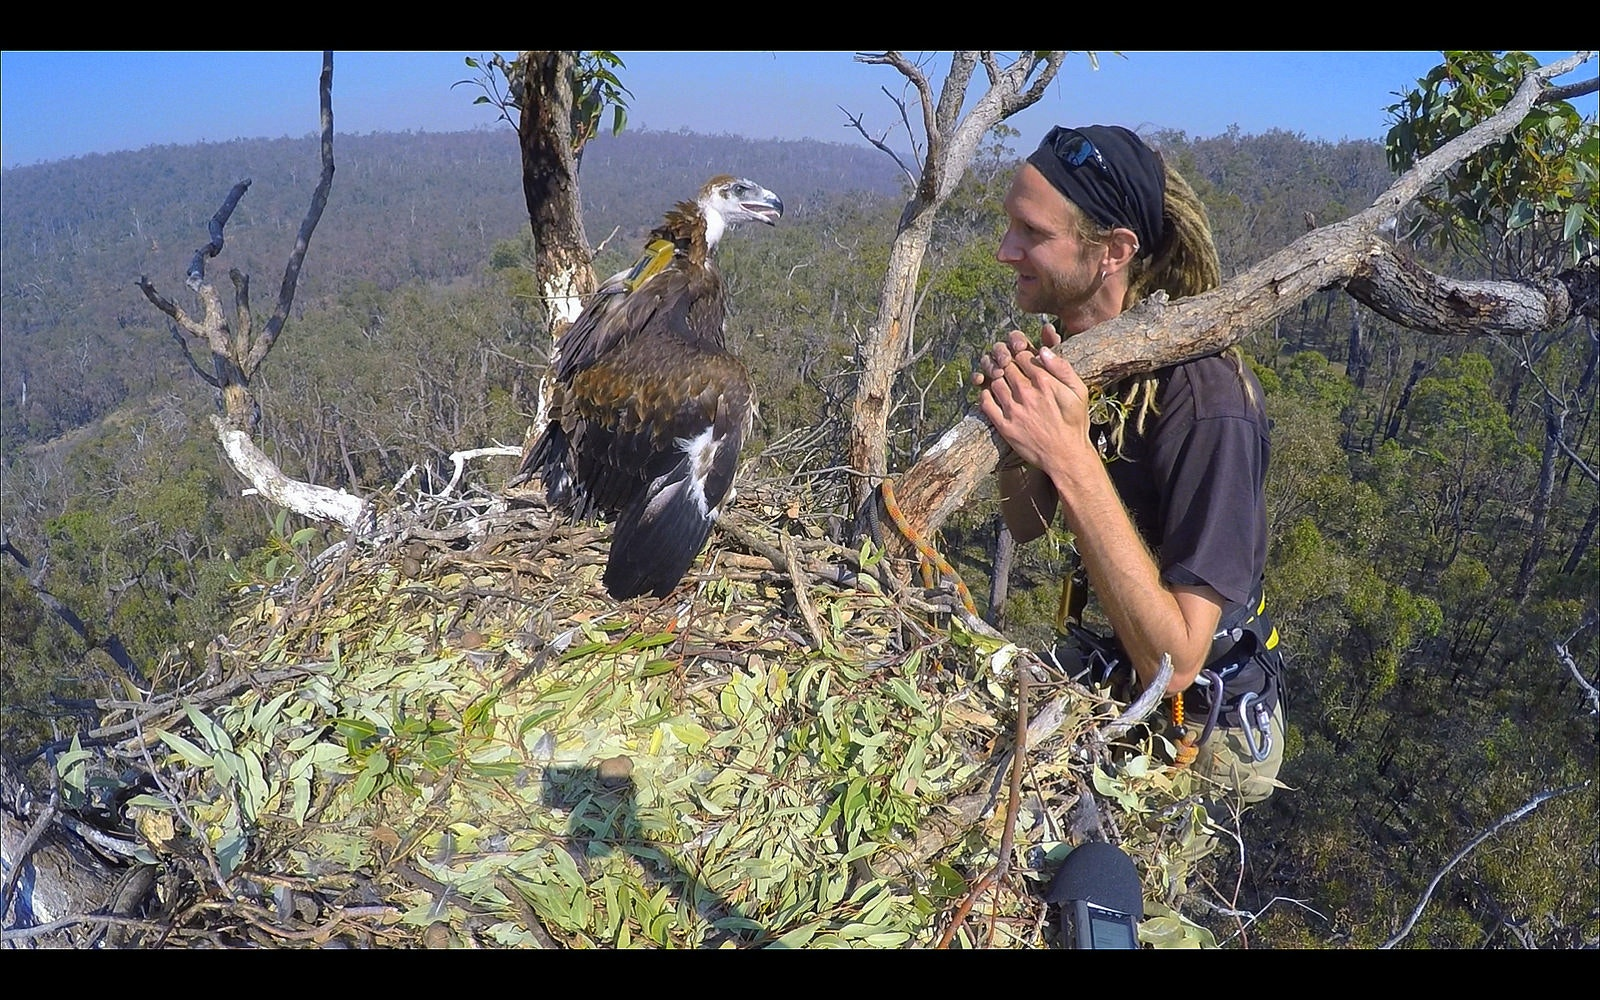 Mass slaughter of wedge-tailed eagles could have Australia-wide consequences